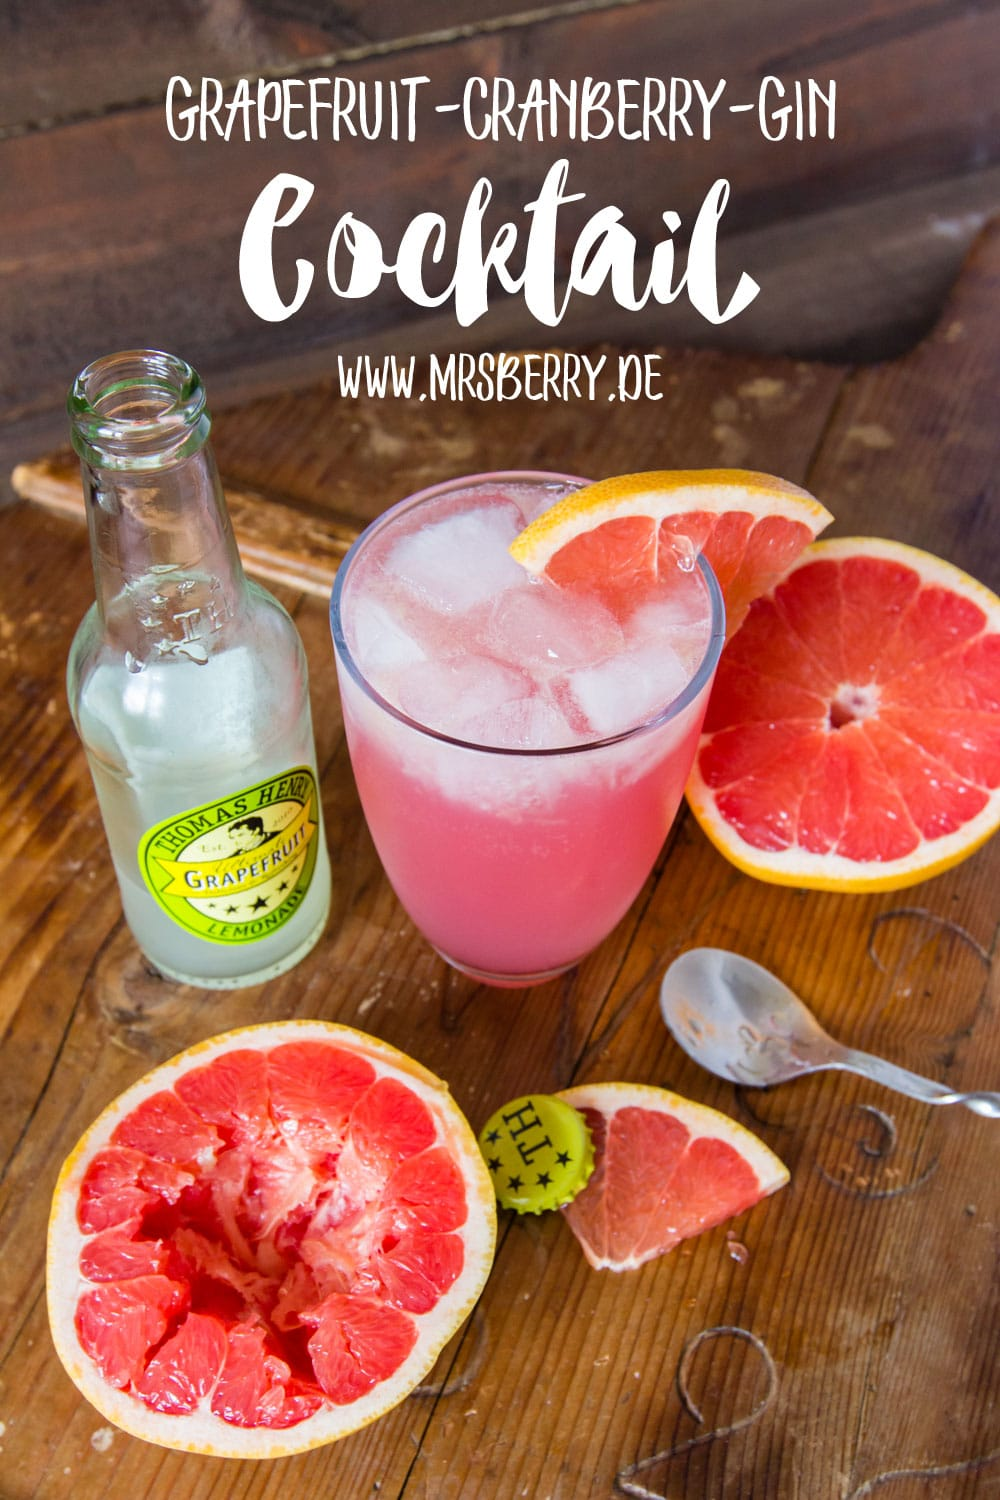 Muttertagsgeschenke: Gin-Cocktail-Party mit Rezept für Grapefruit-Cranberry-Gin Cocktail